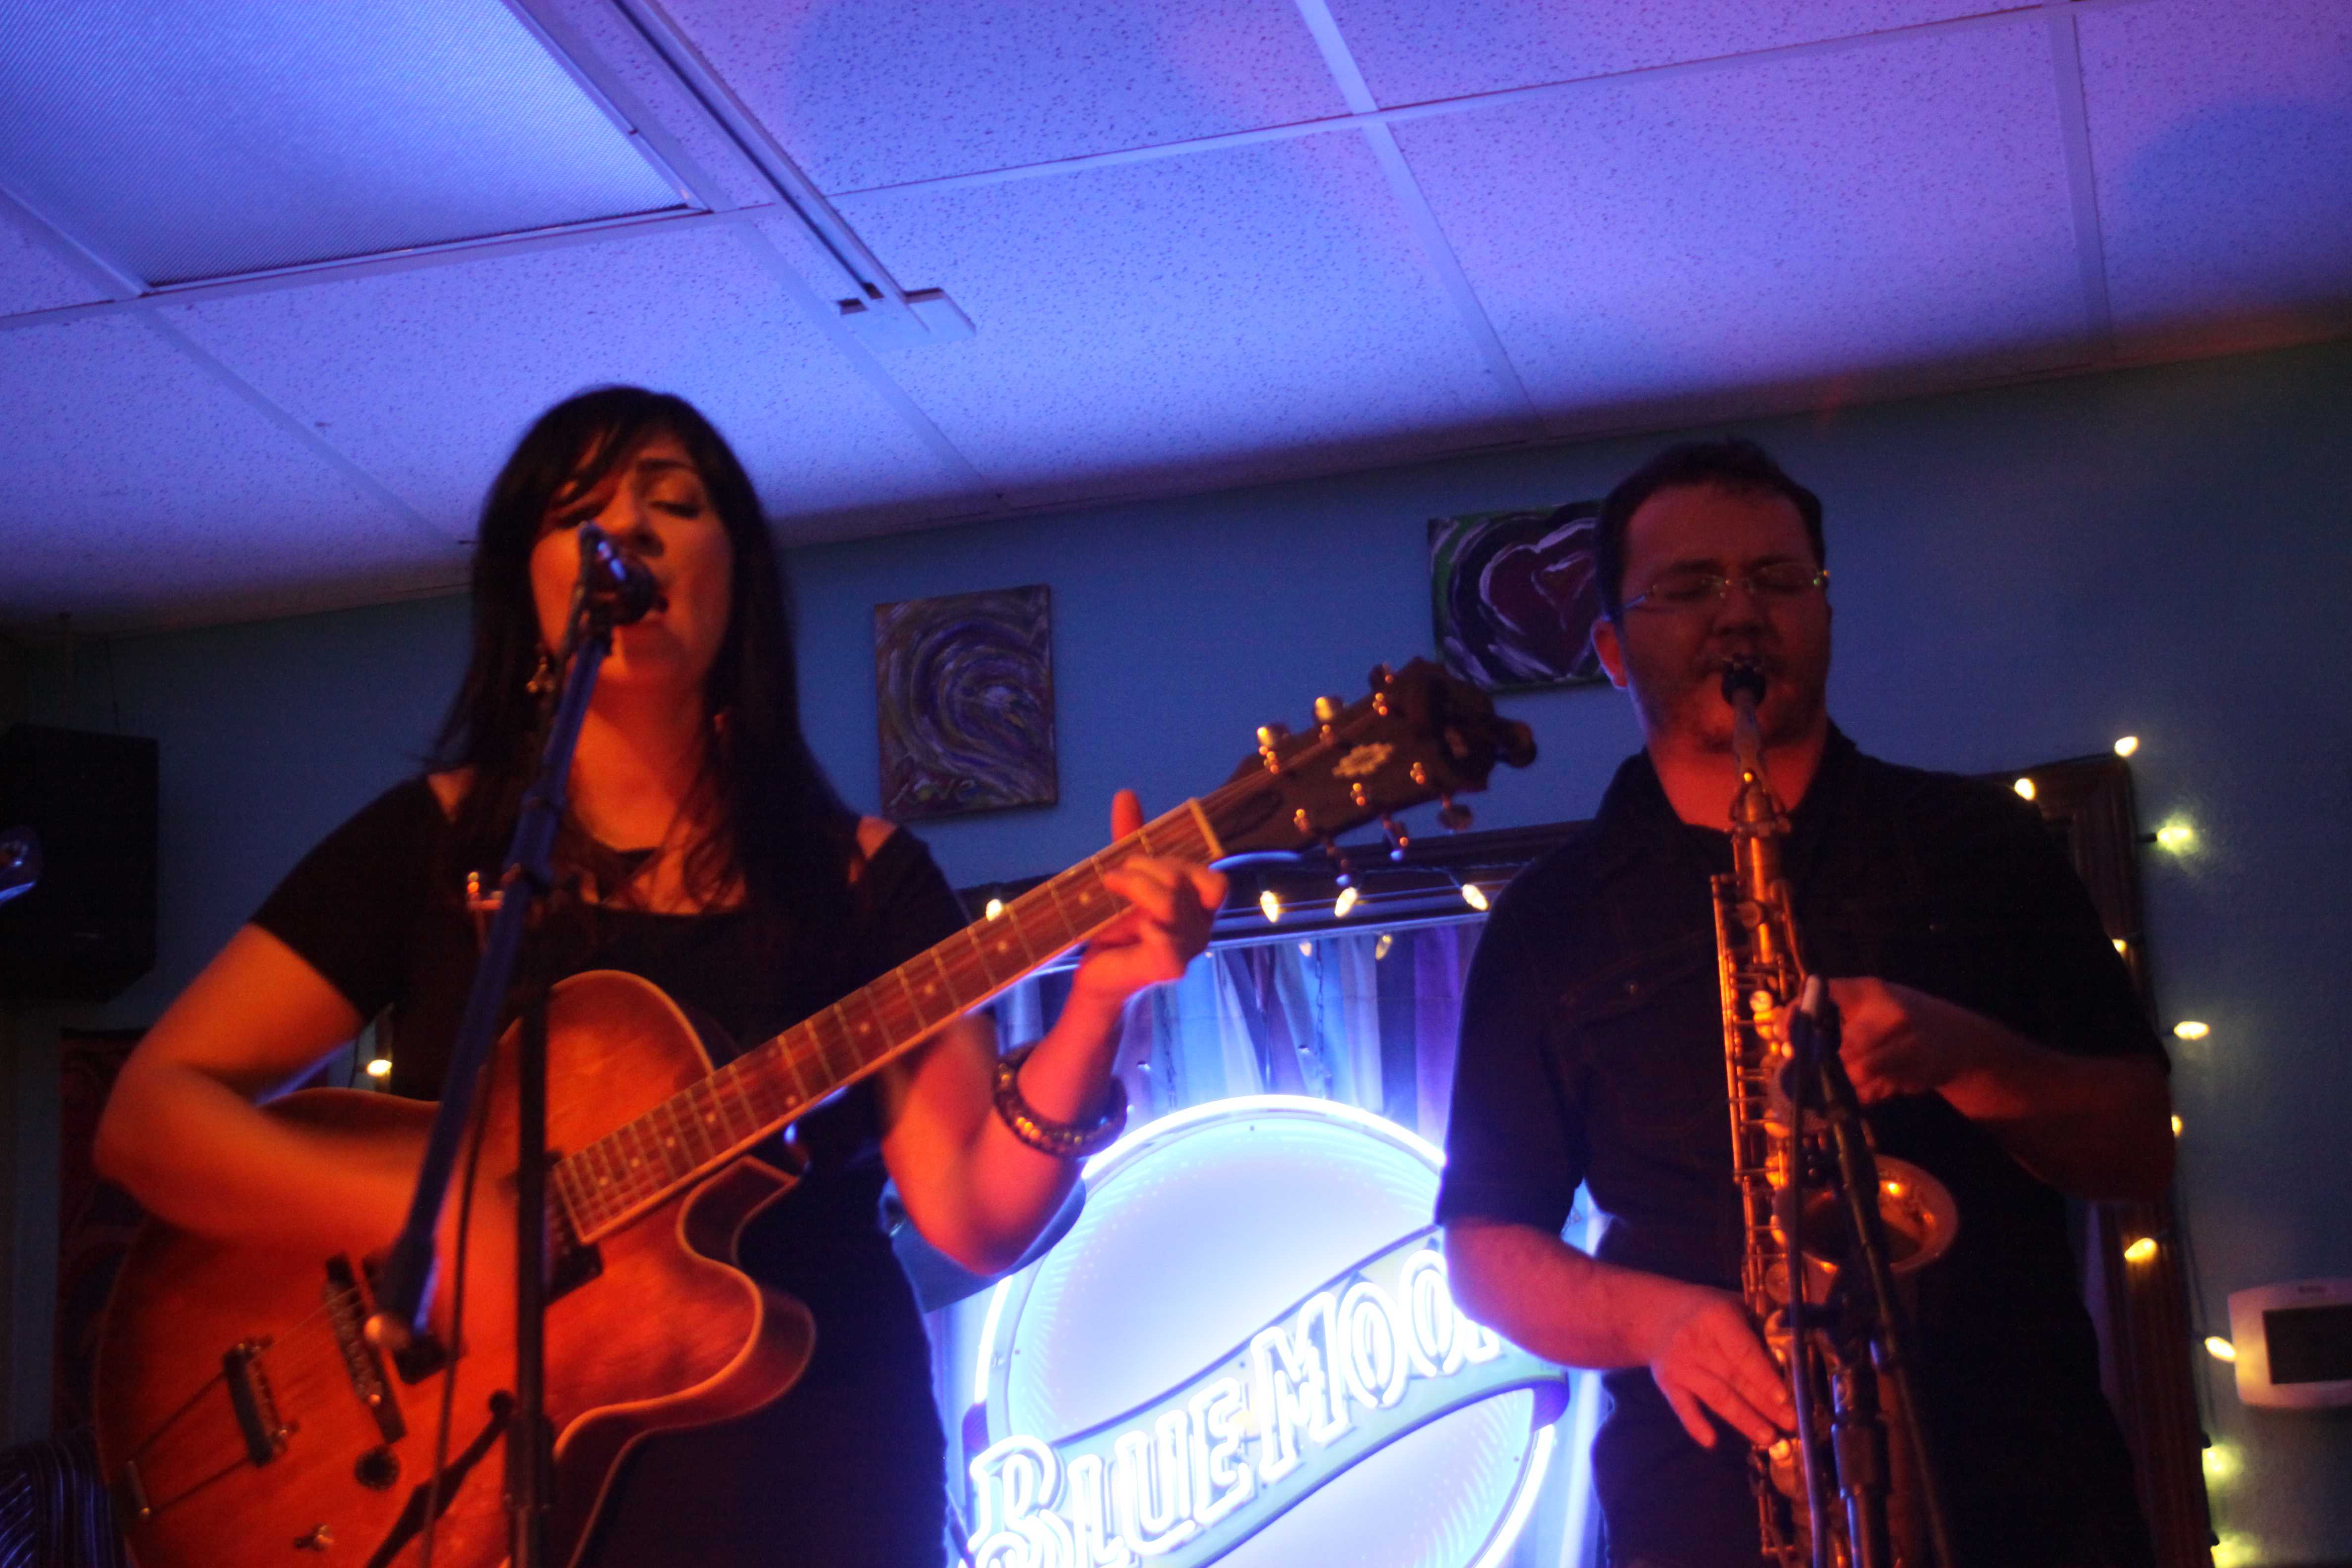 Local bands rock the house at Cafe Flo